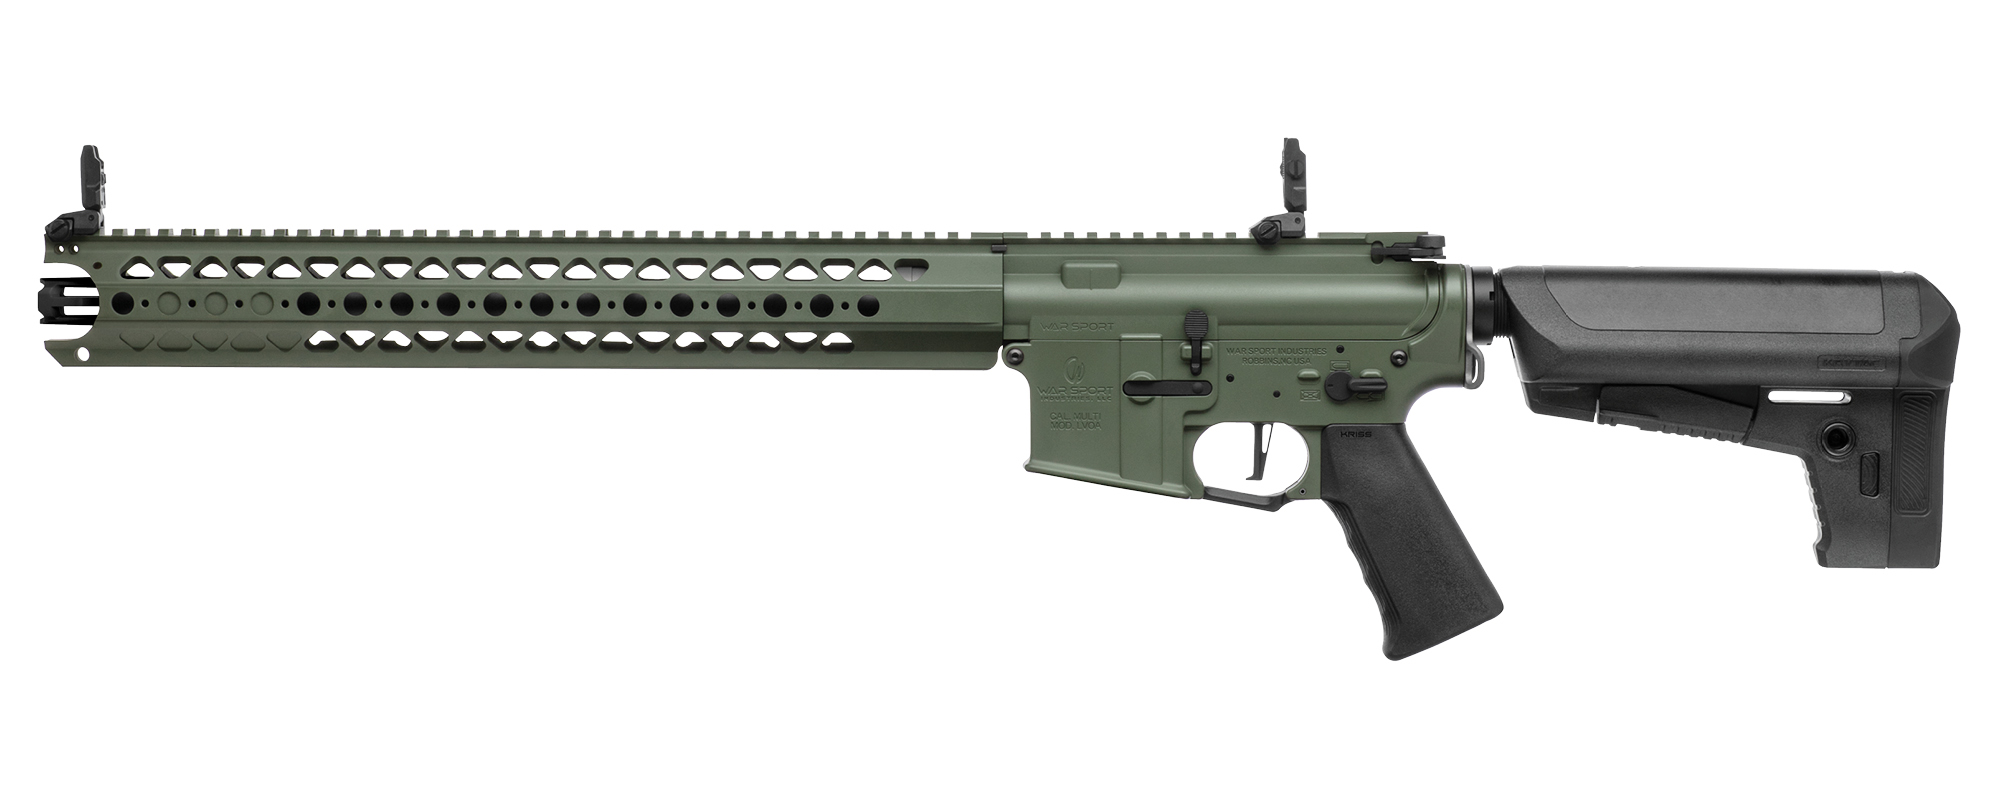 Warsport LVOA-C Foliage Green